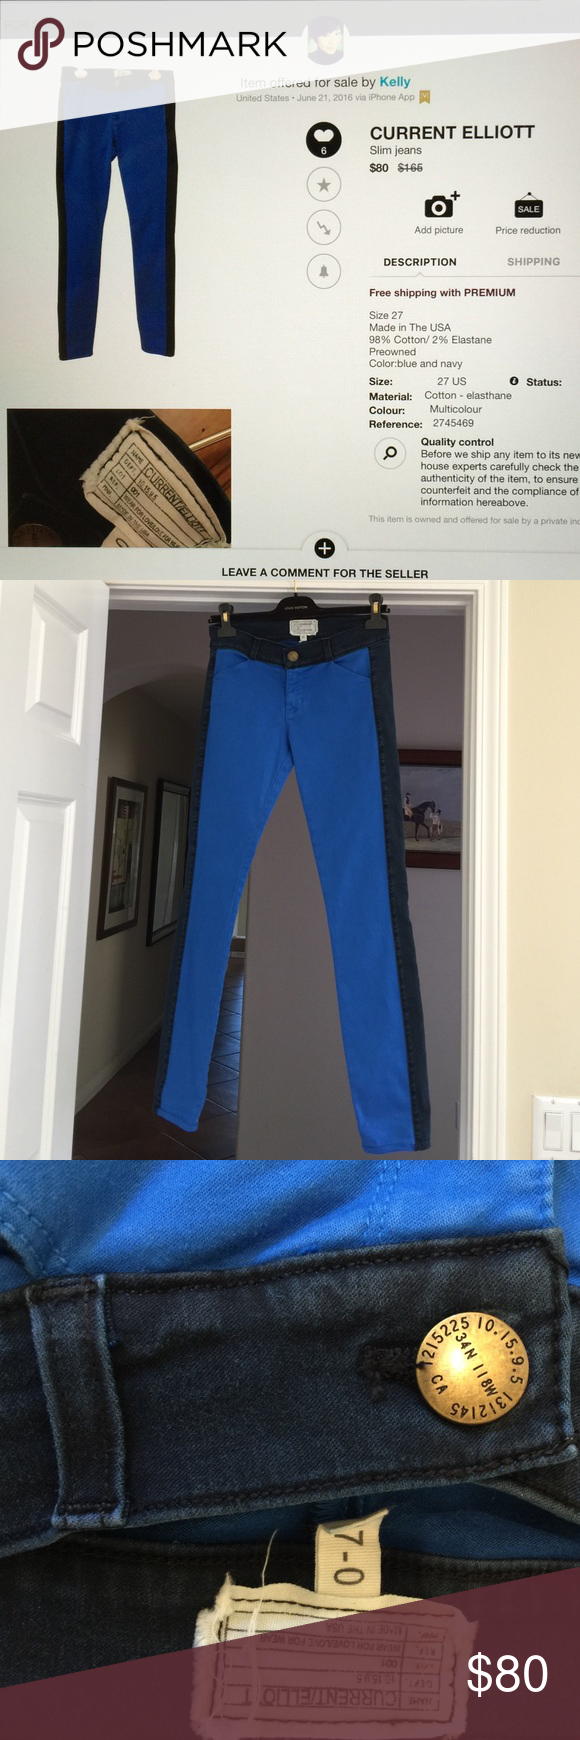 Skinny Jeans Current Elliott, size 27, excellent condition, 98% Cotton/2% Elastane Current/Elliott Jeans Skinny